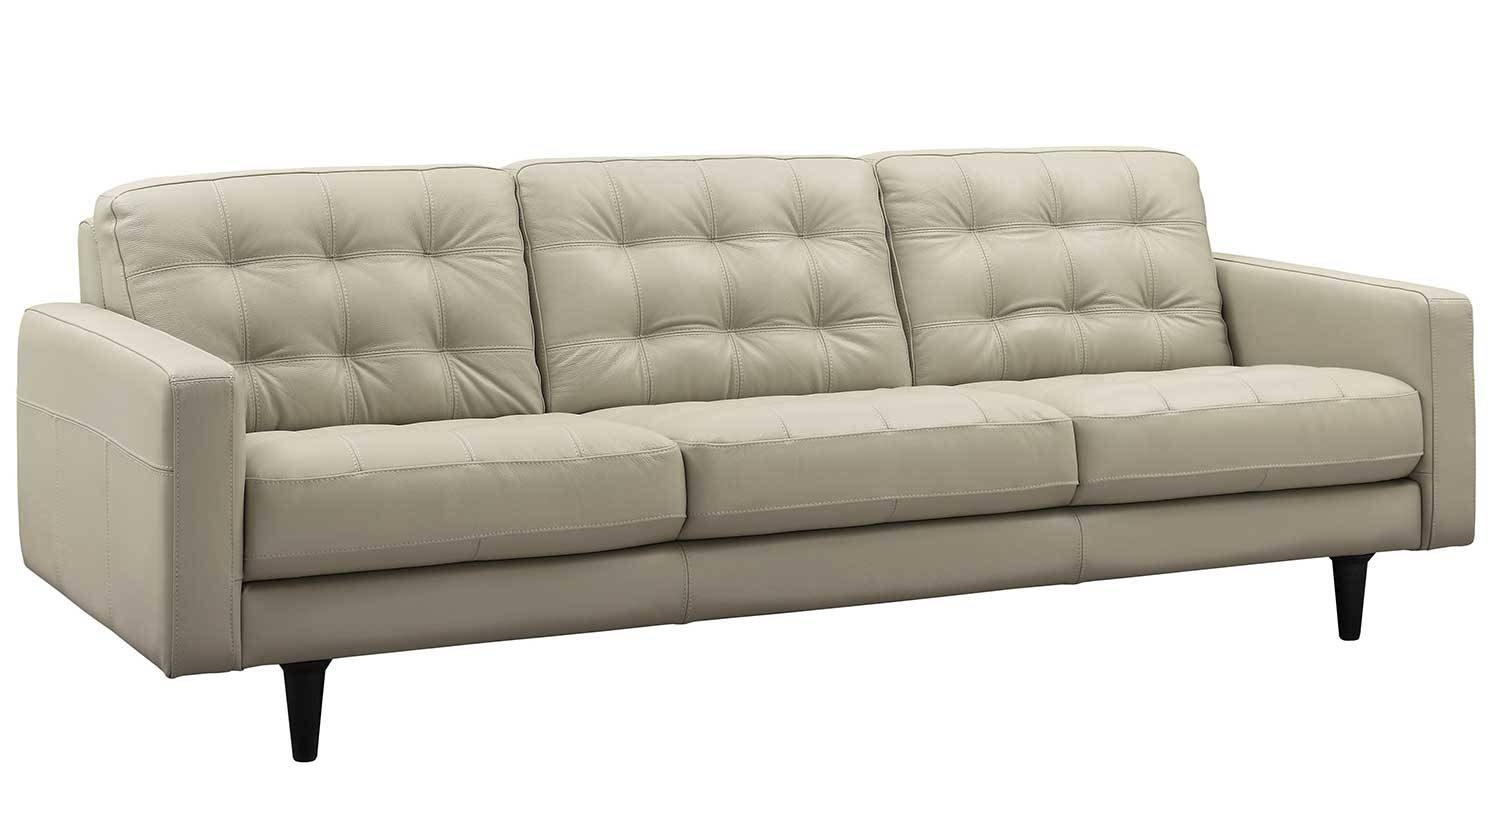 Circle Furniture - Fairfield Sofa | Leather Sofas Ma | Boston intended for Circle Sofas (Image 2 of 25)